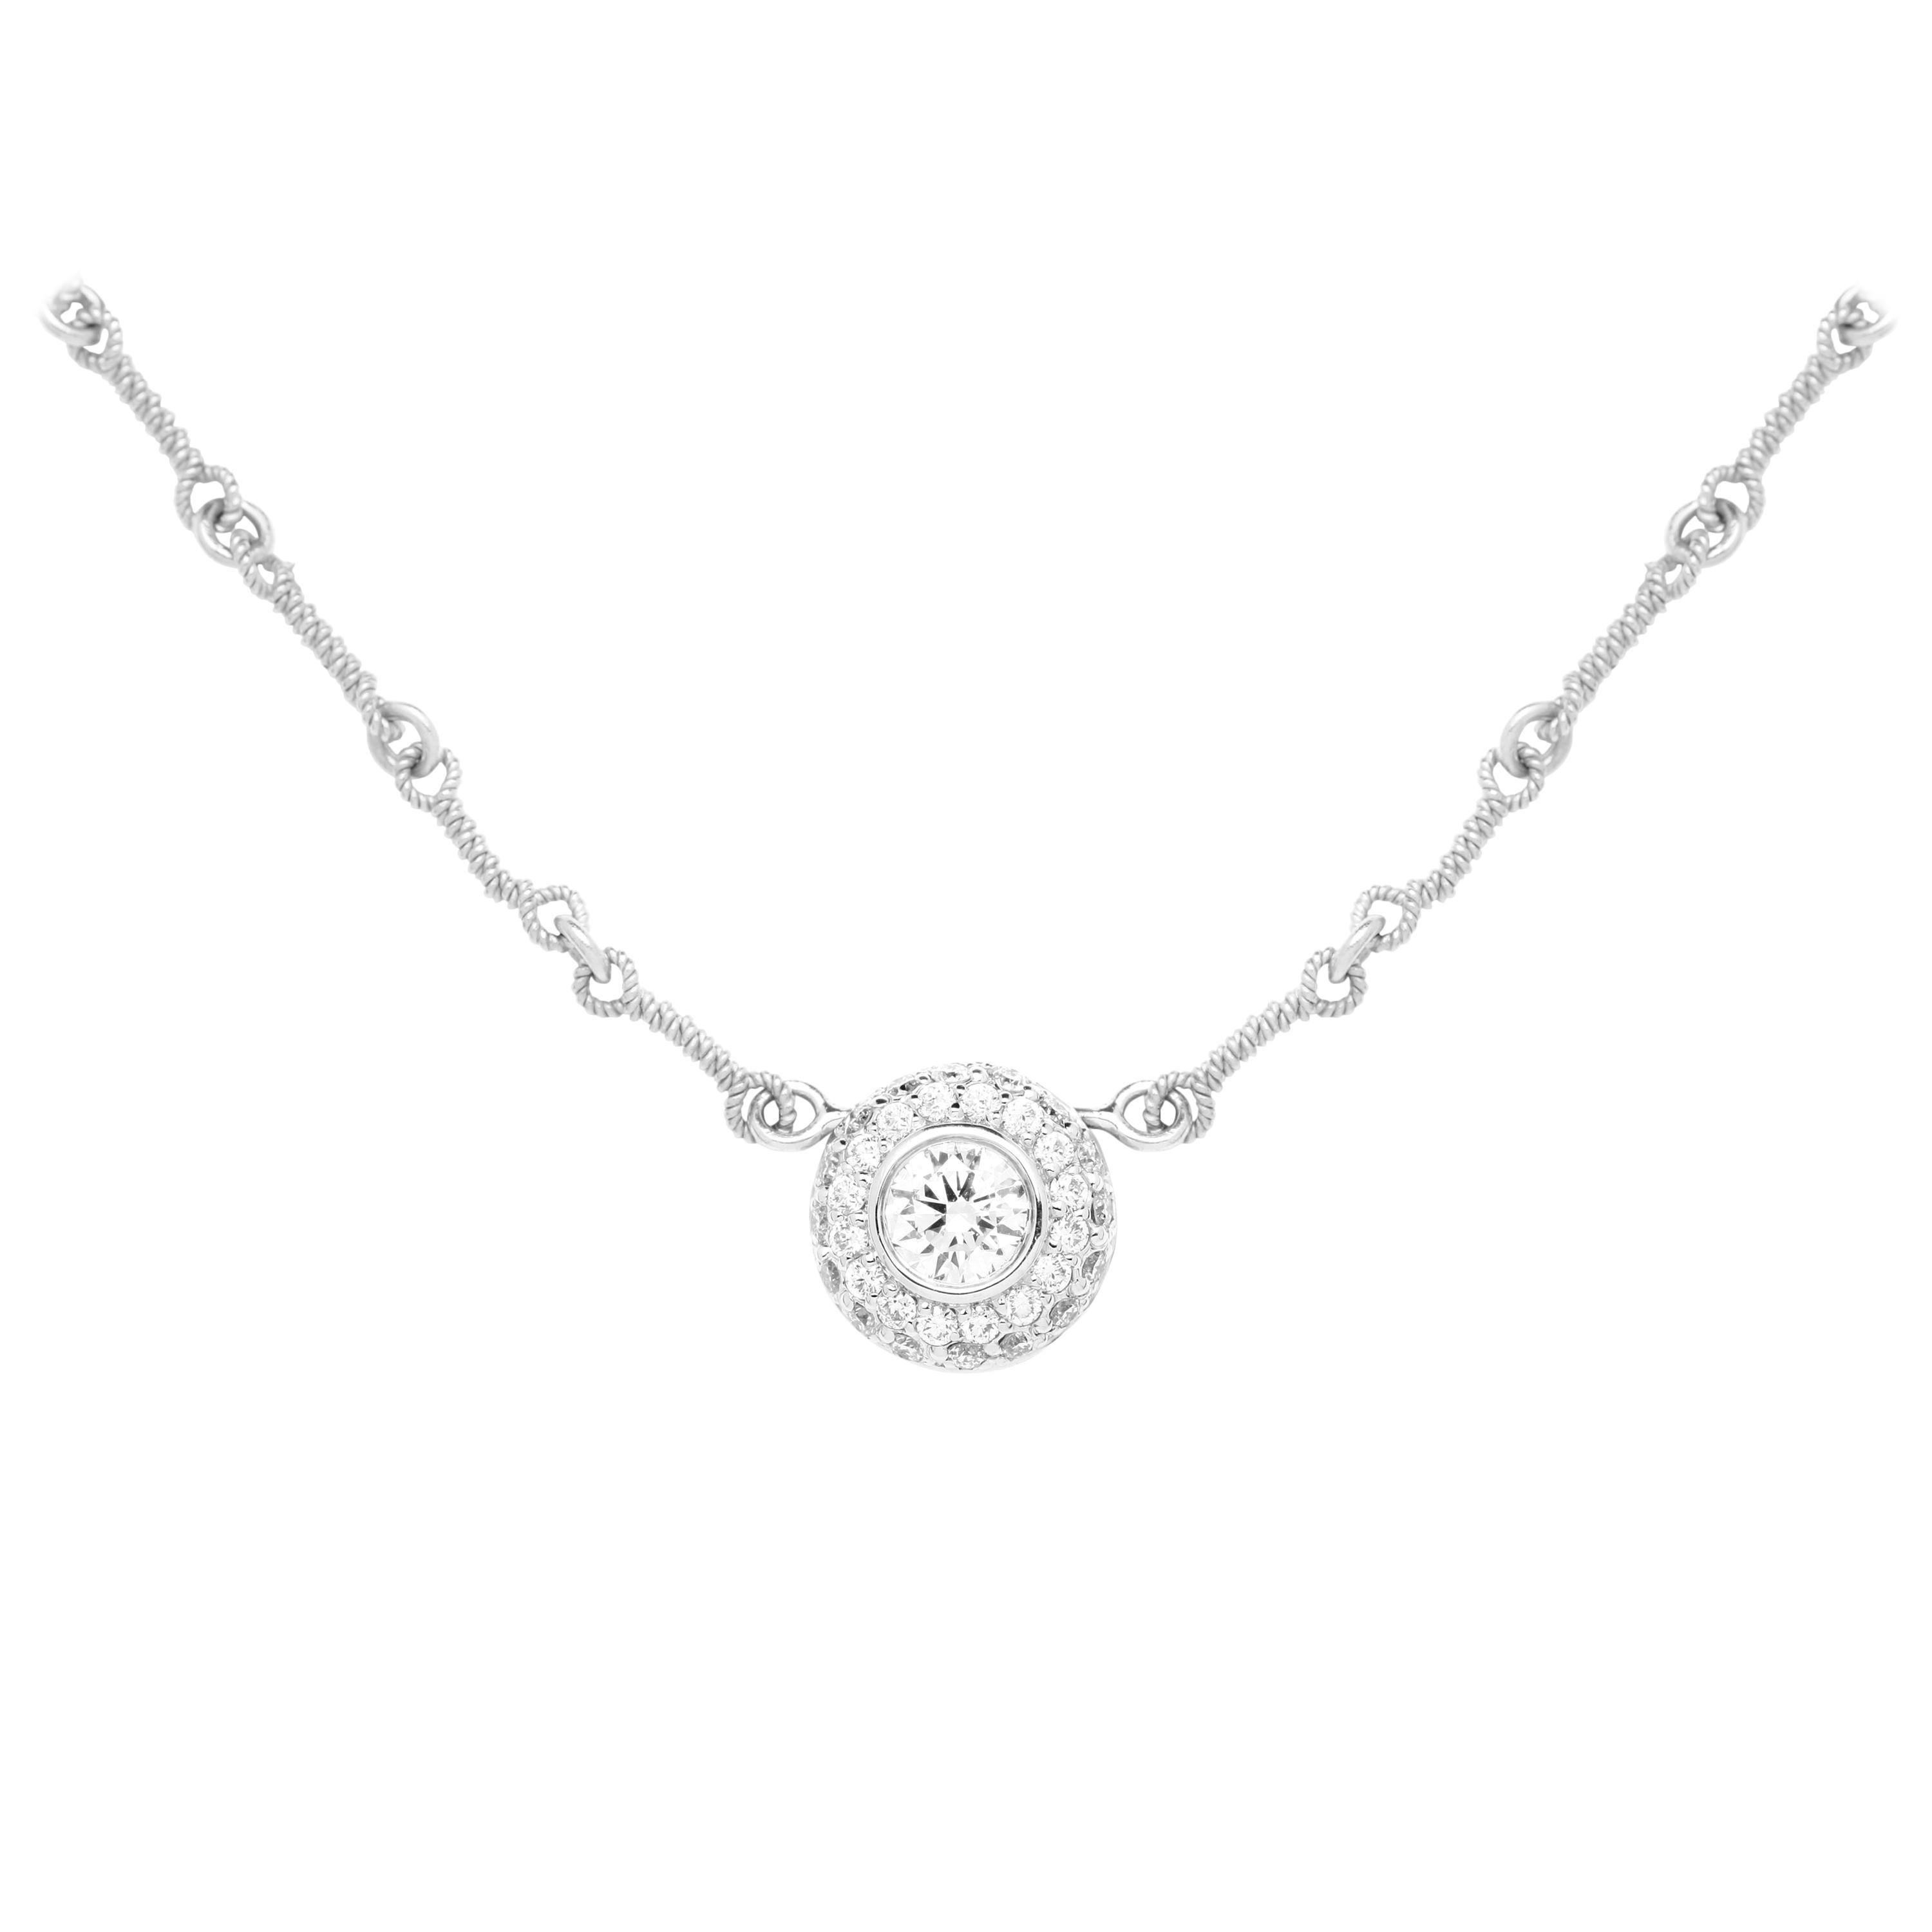 Stambolian White Gold and Diamond Round Pendant with Chain Necklace